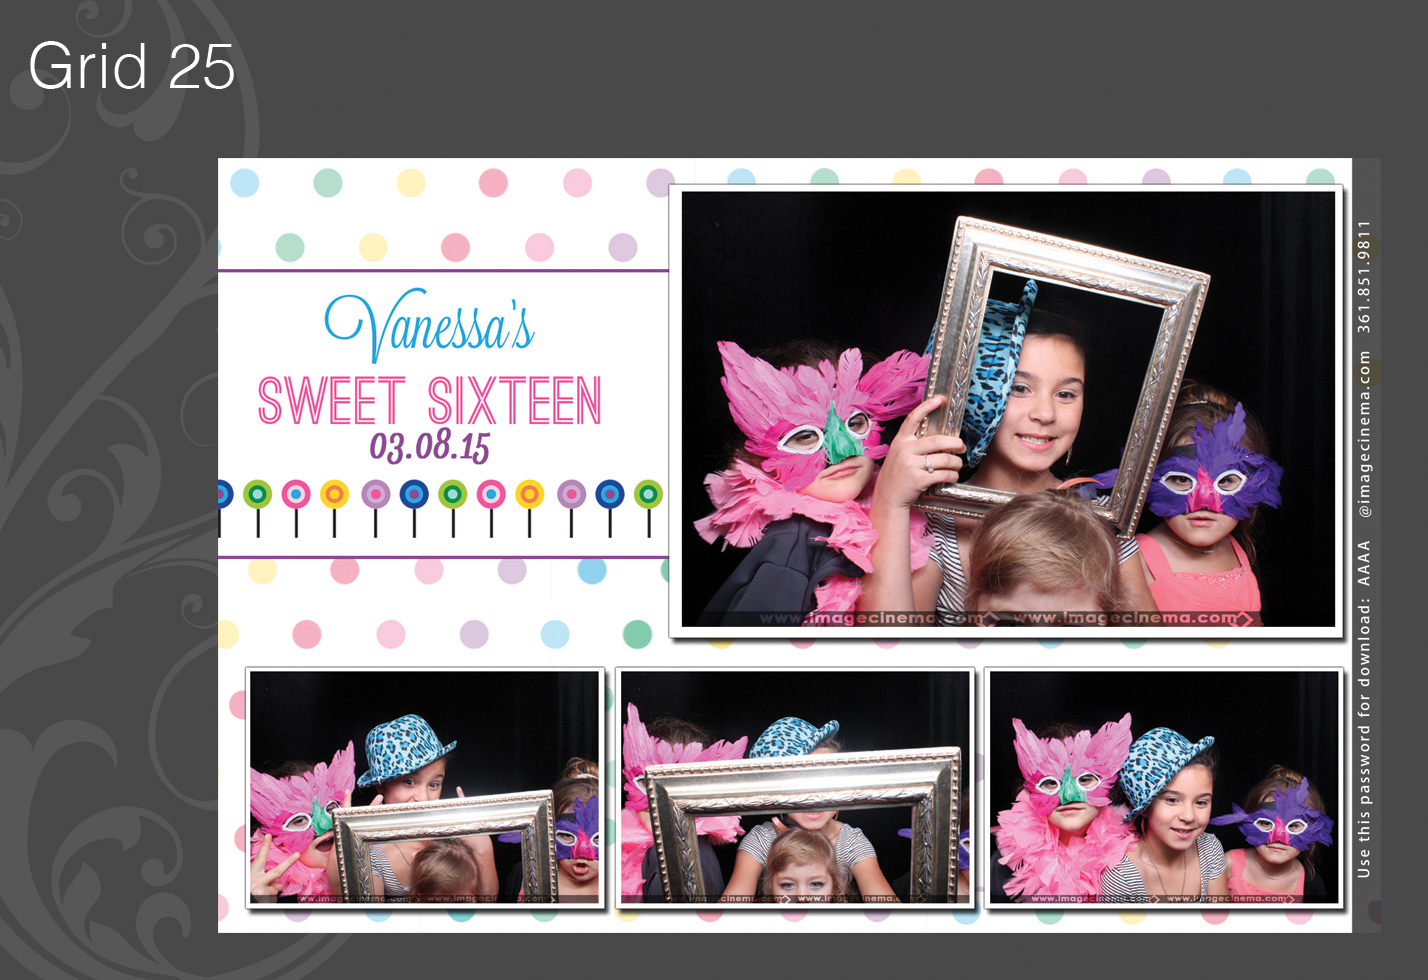 Photo Booth Grid 25